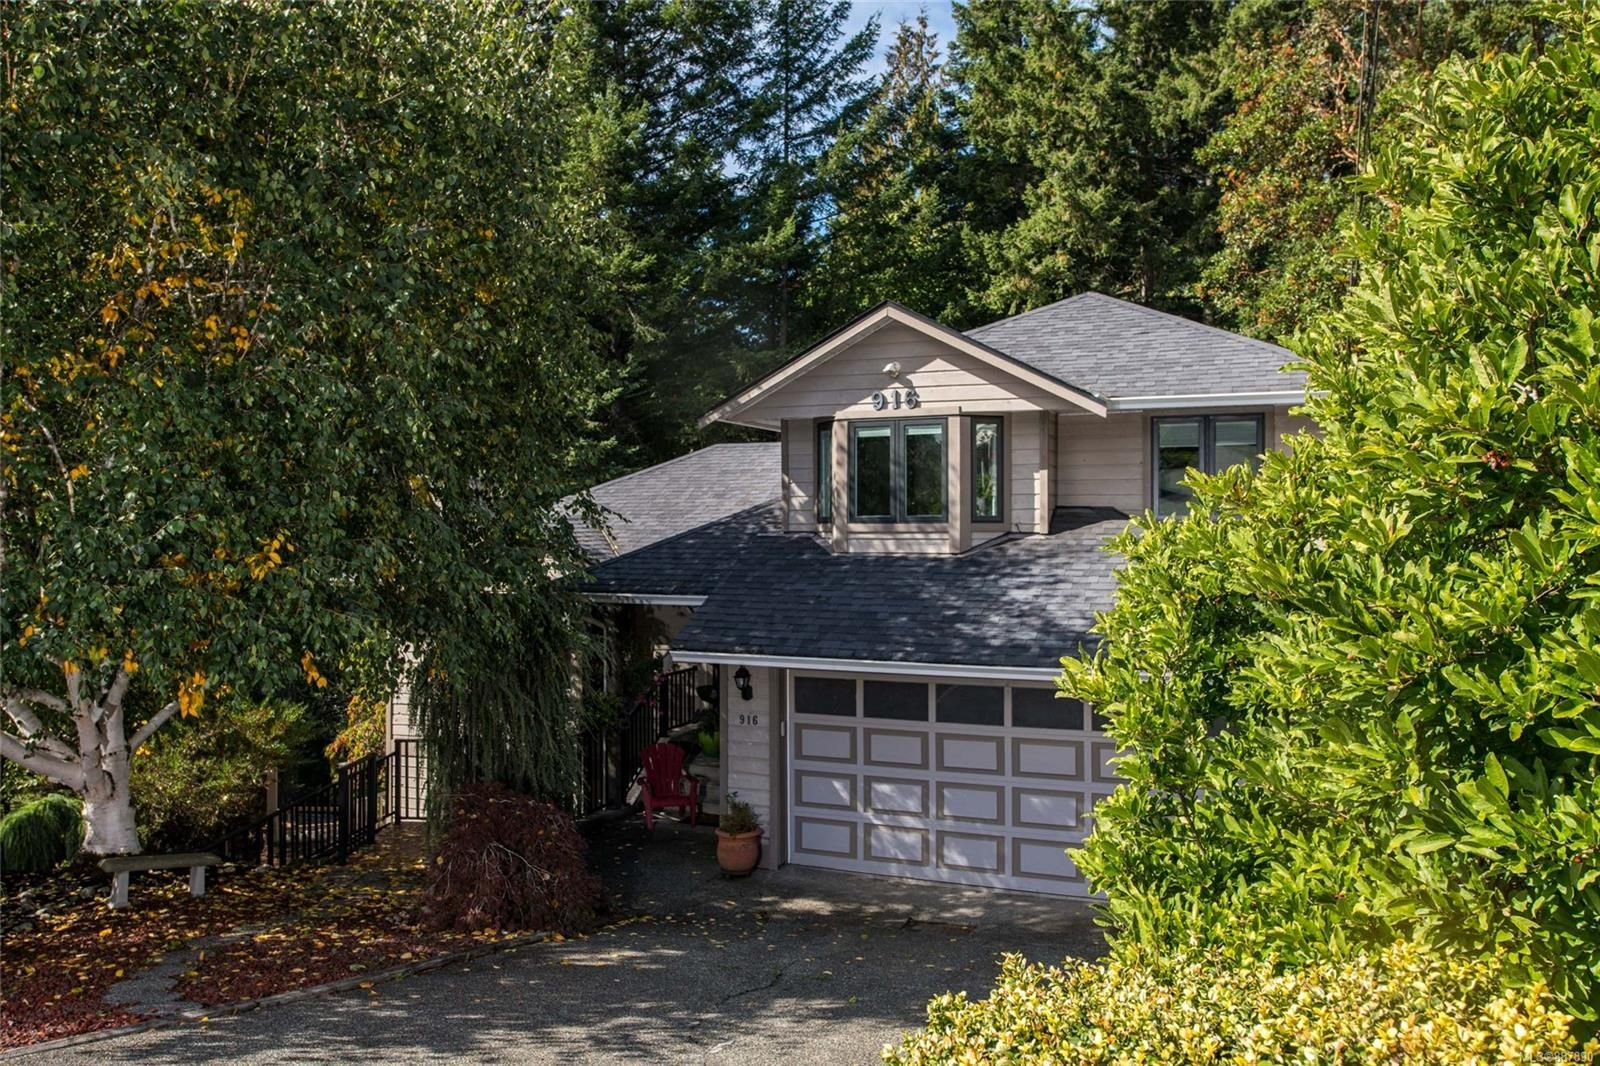 Main Photo: 916 Columbus Pl in Langford: La Walfred House for sale : MLS®# 887890